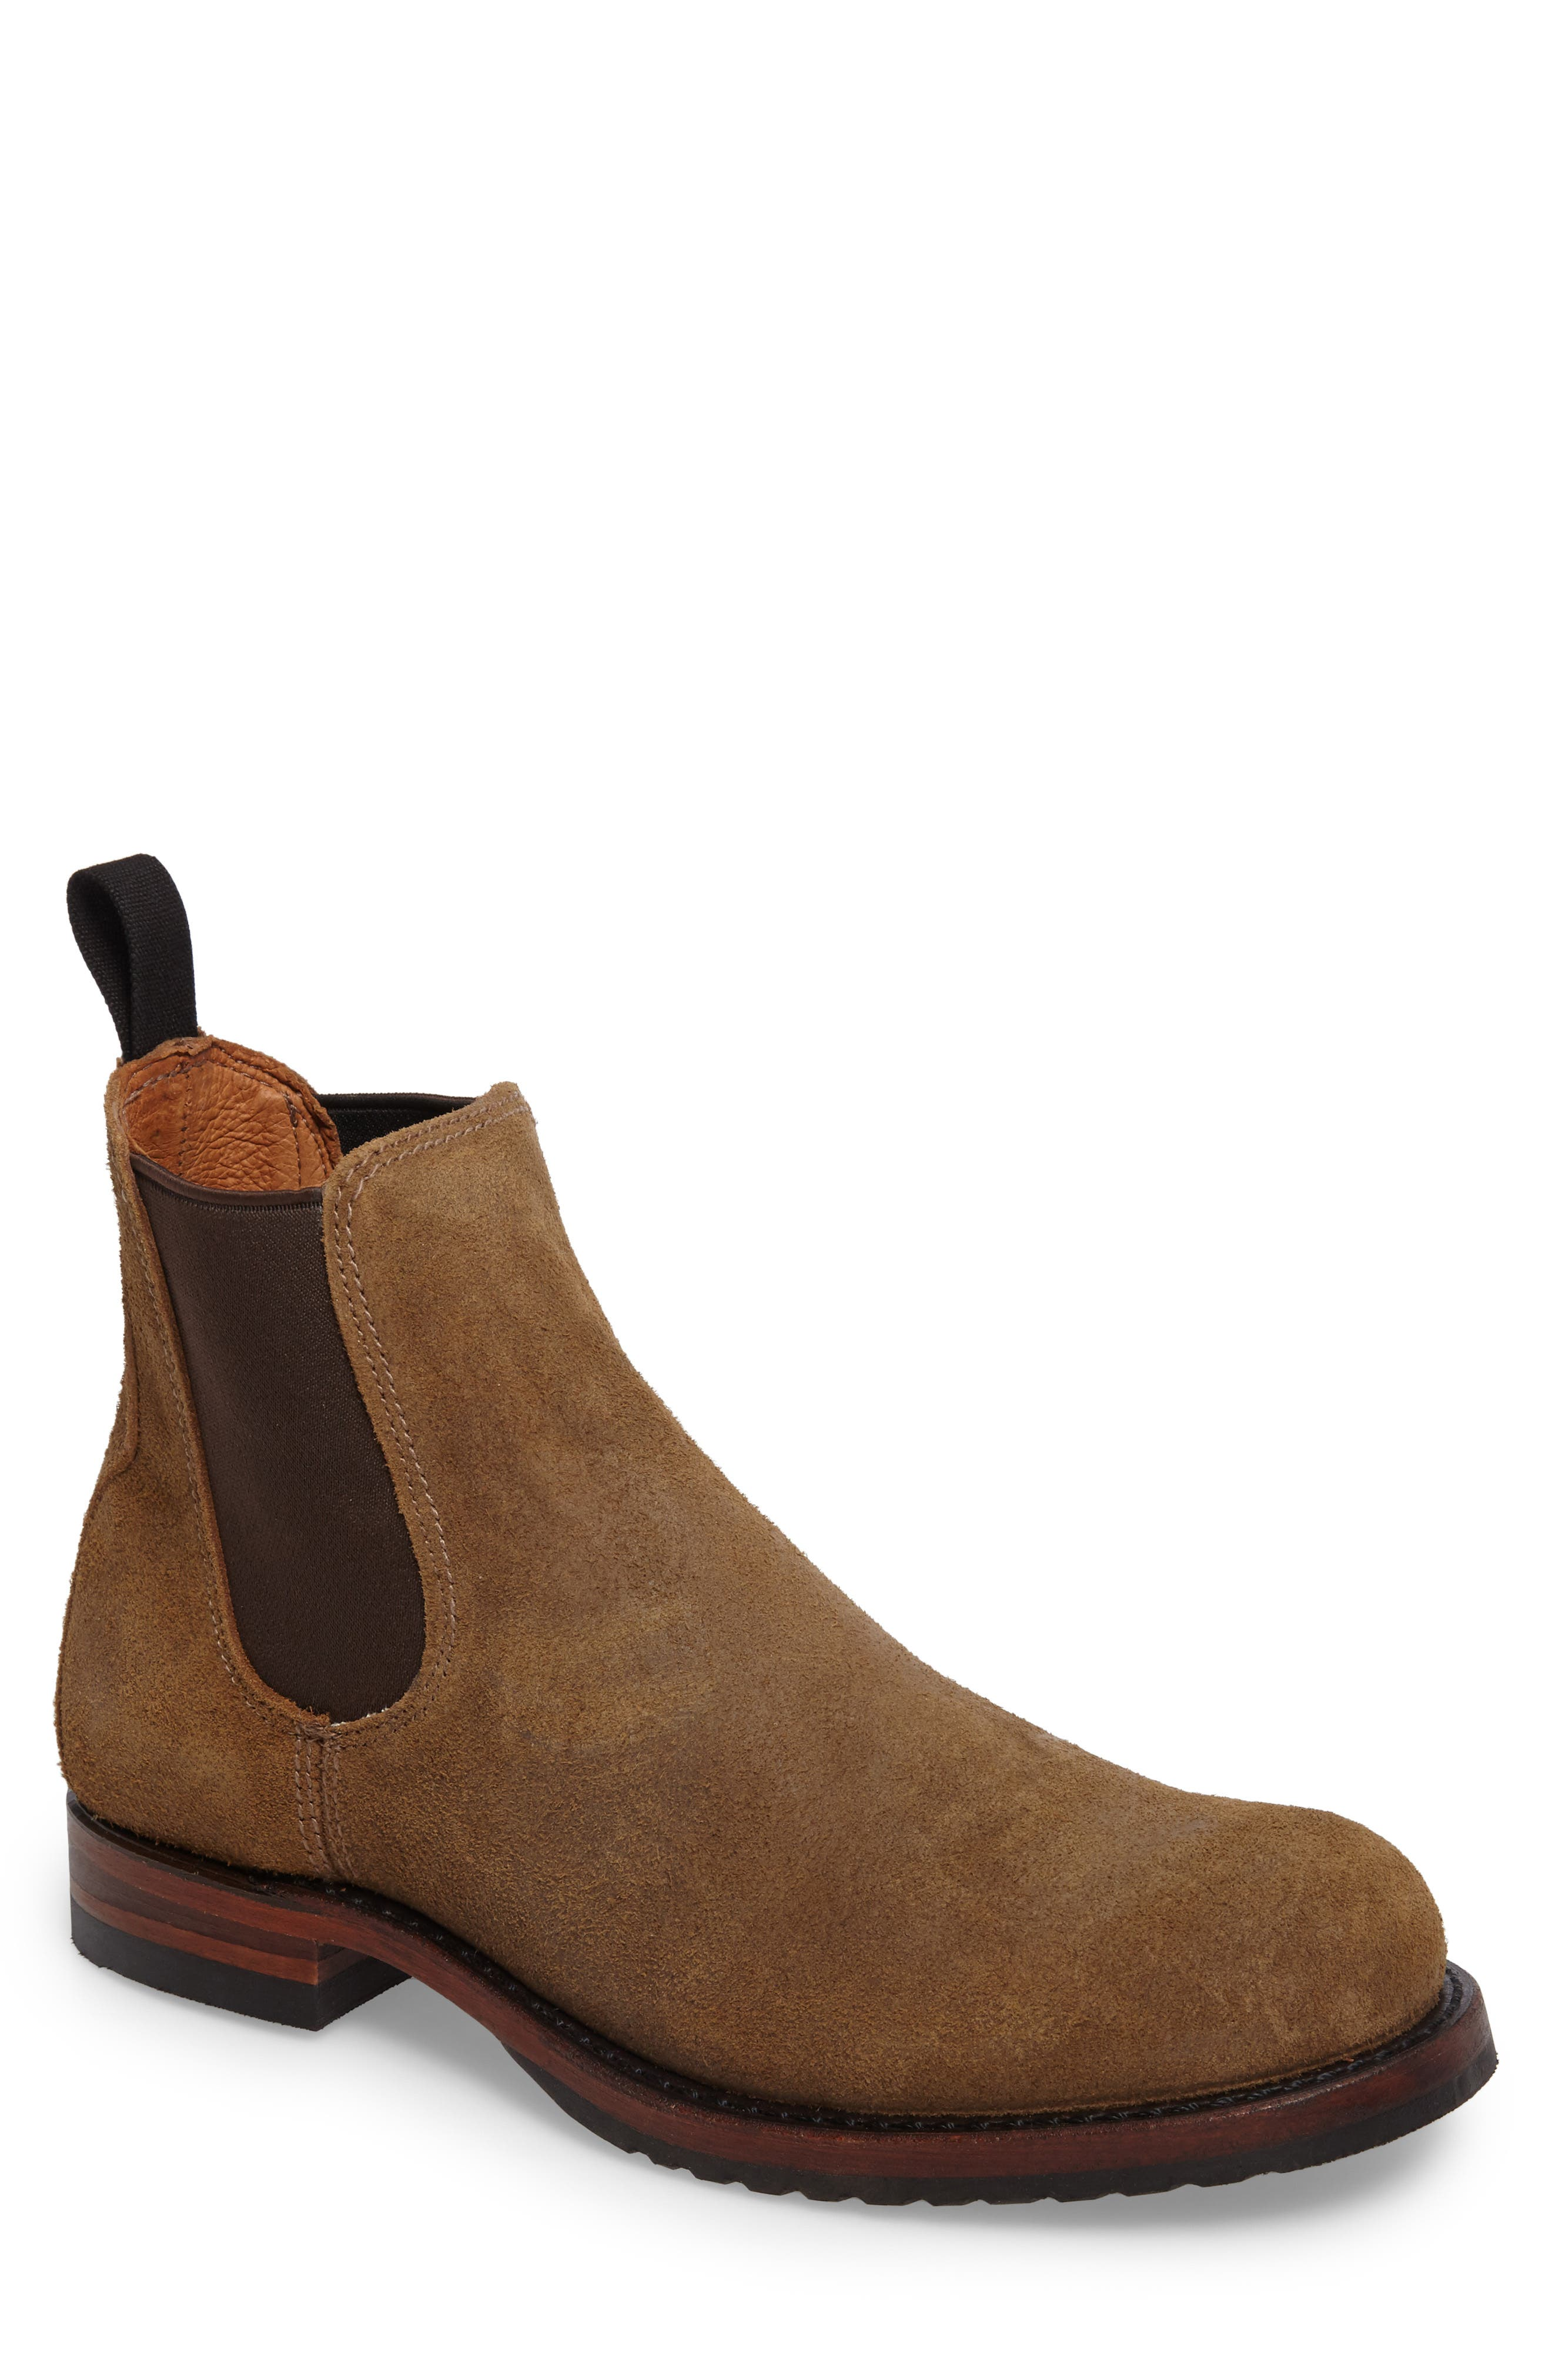 Logan Chelsea Boot,                             Main thumbnail 1, color,                             Chestnut Waxed Suede